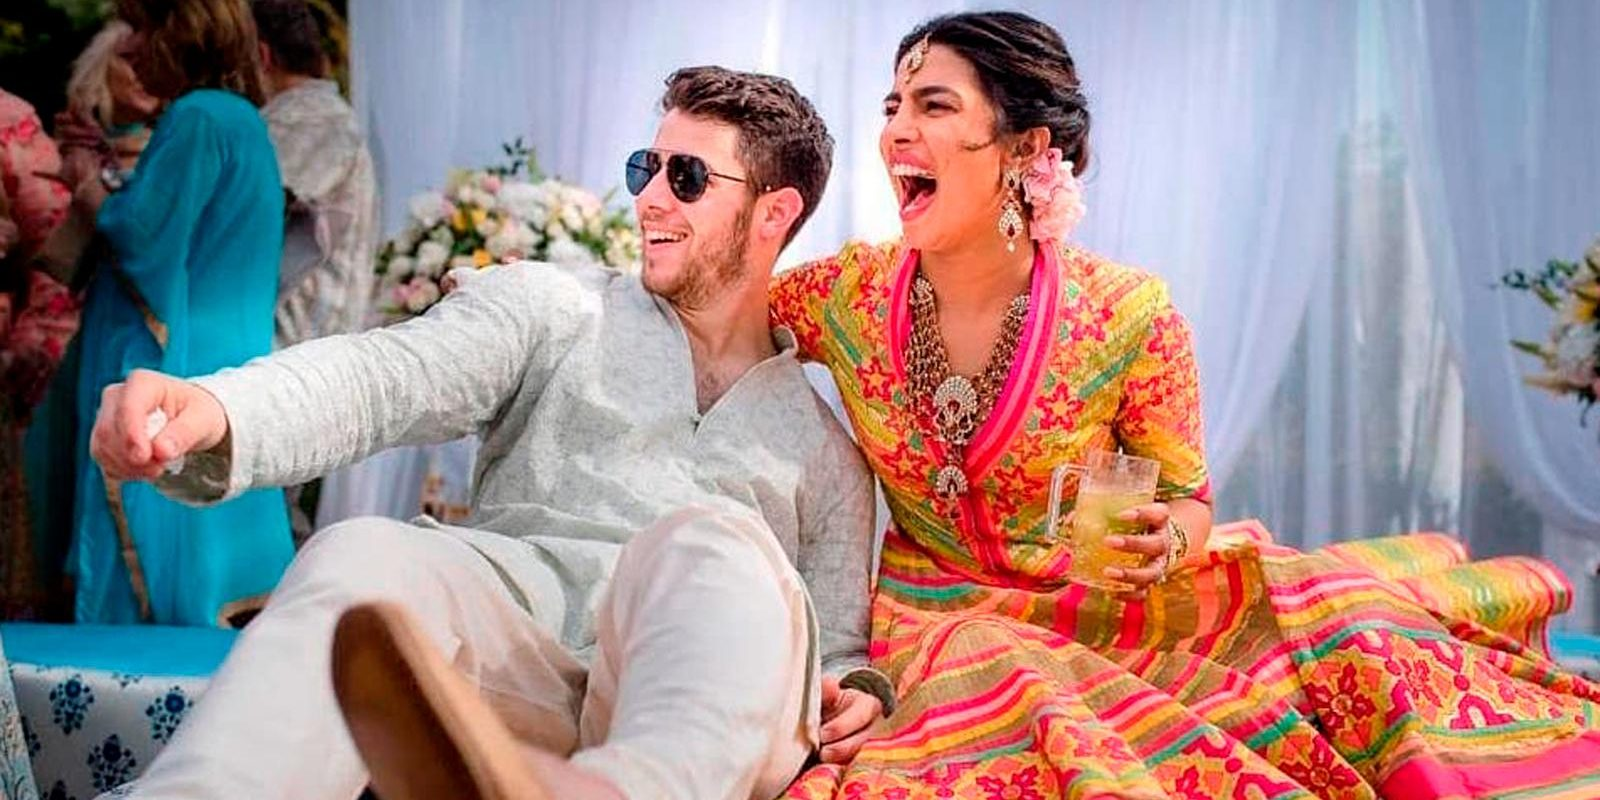 Congratulations to Priyanka and Jonas